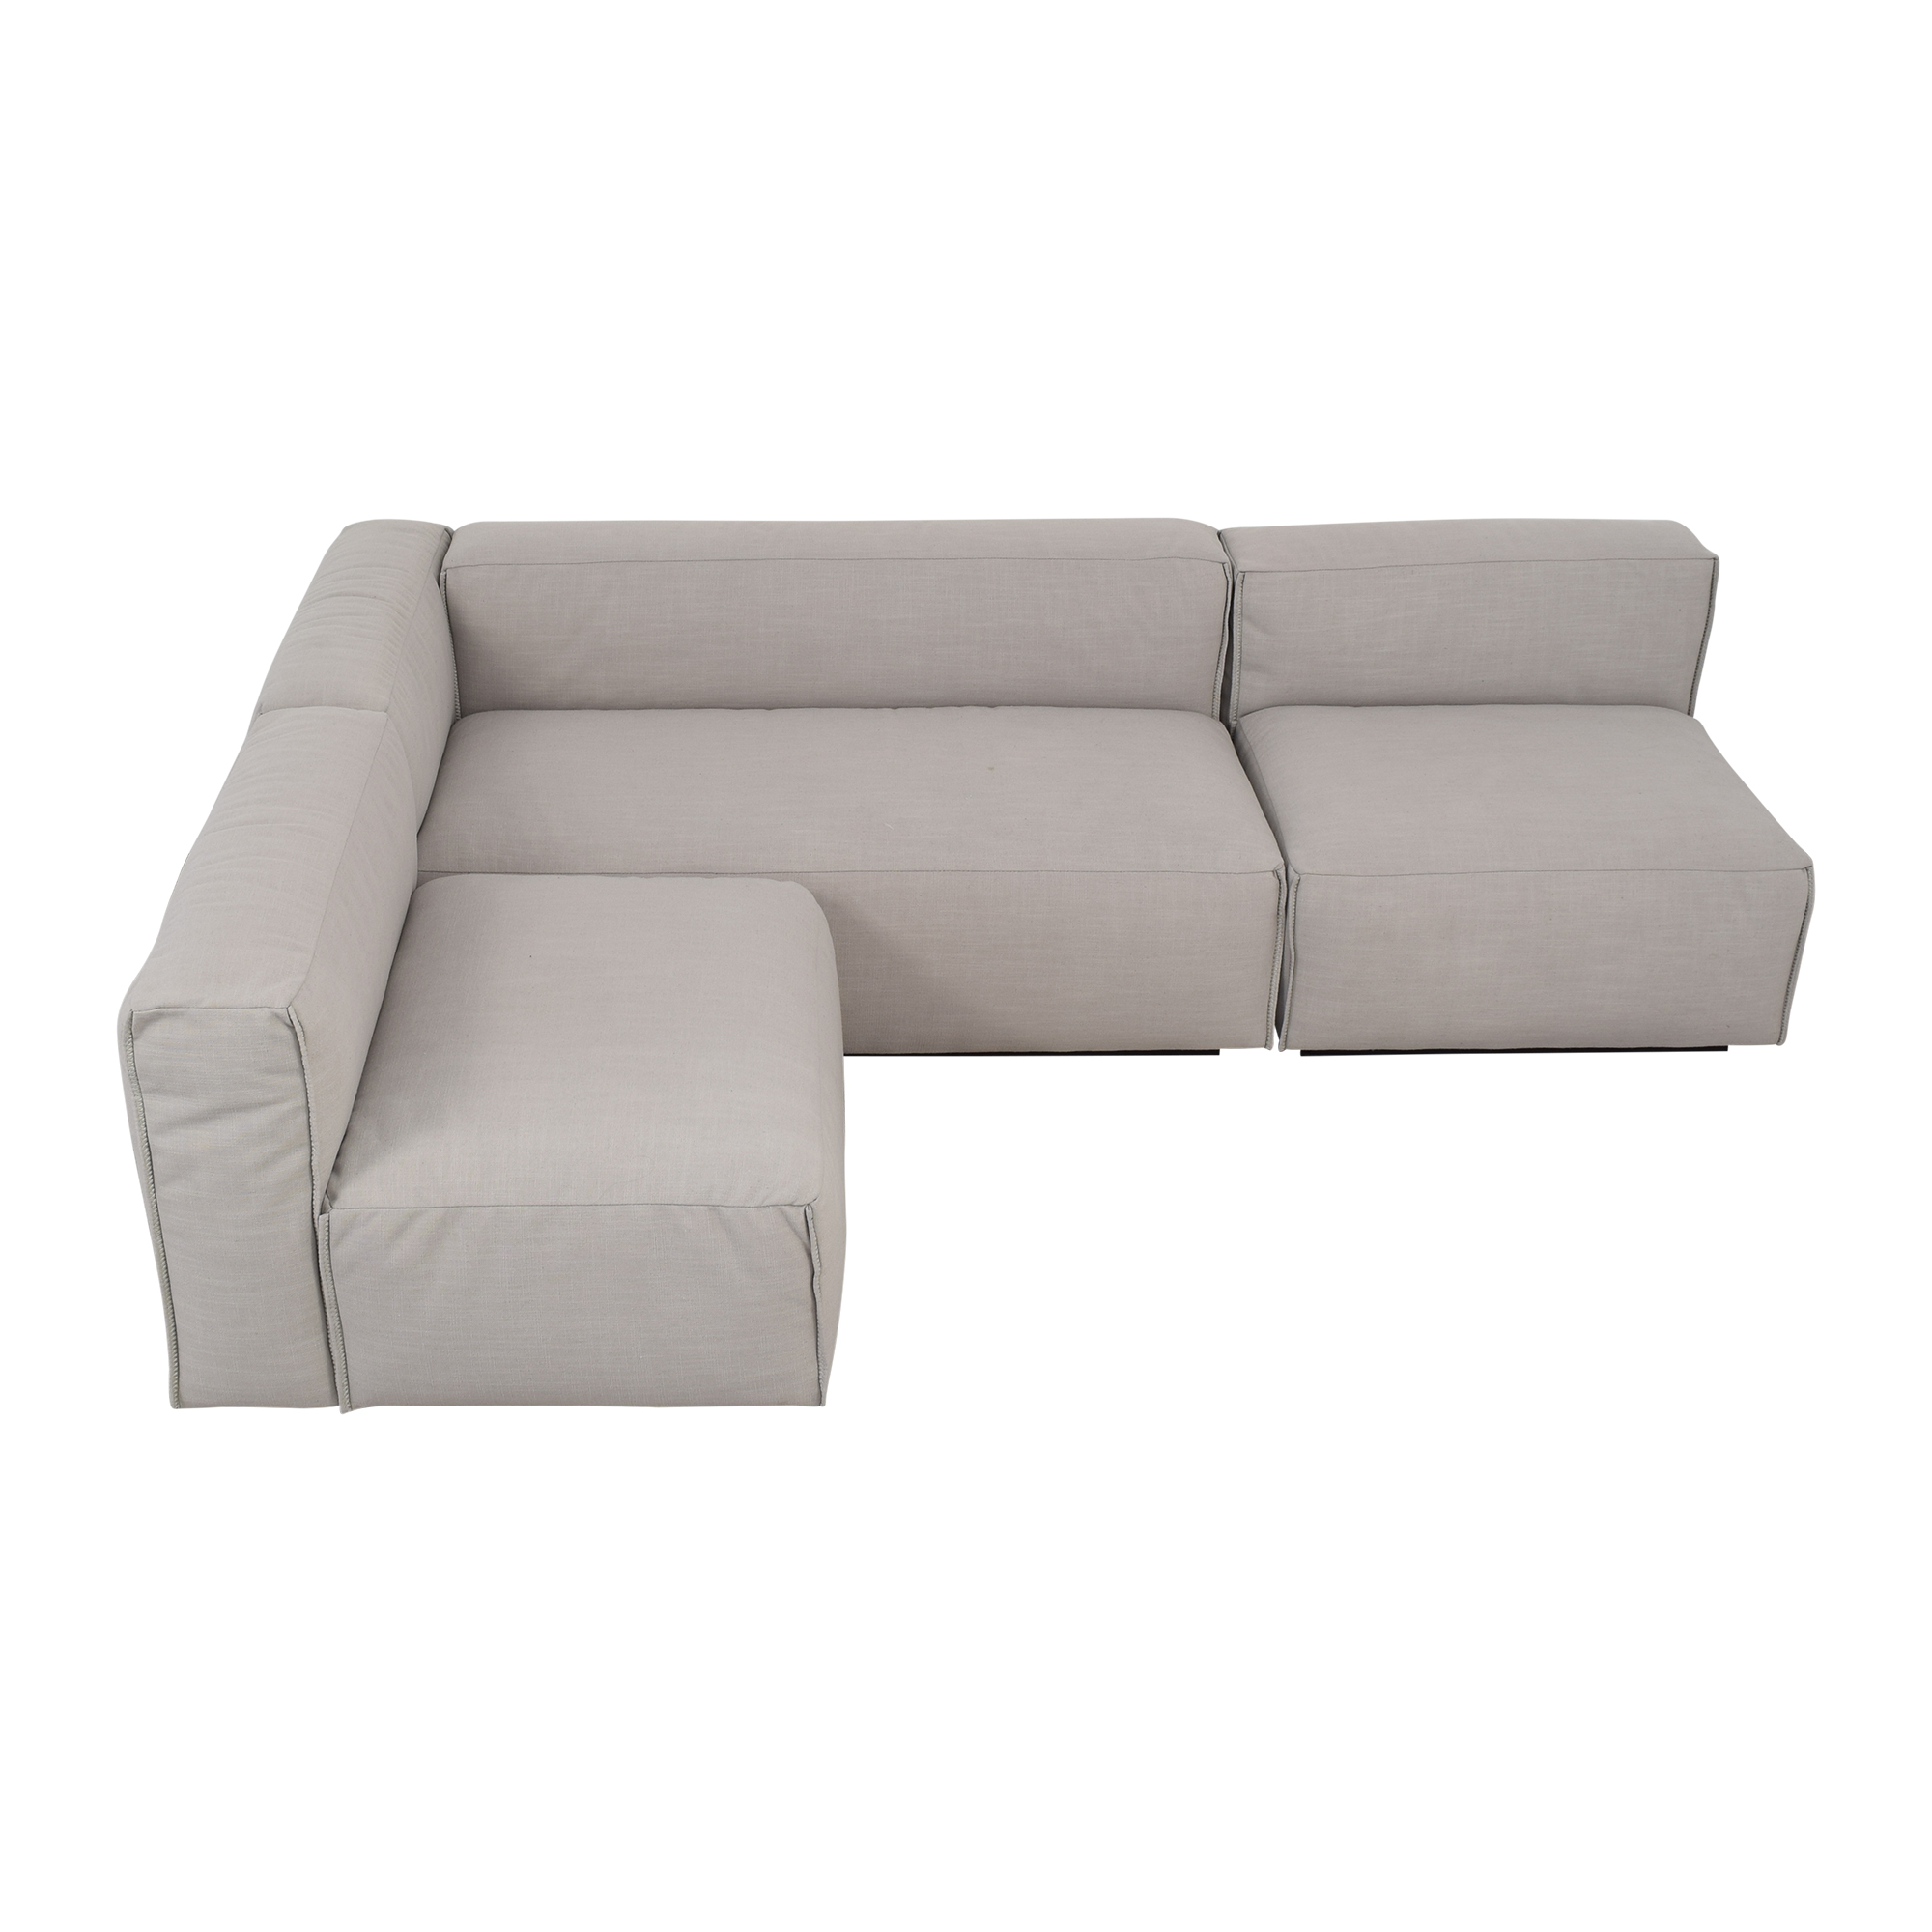 Blu Dot Blu Dot Cleon Medium Sectional Sofa second hand